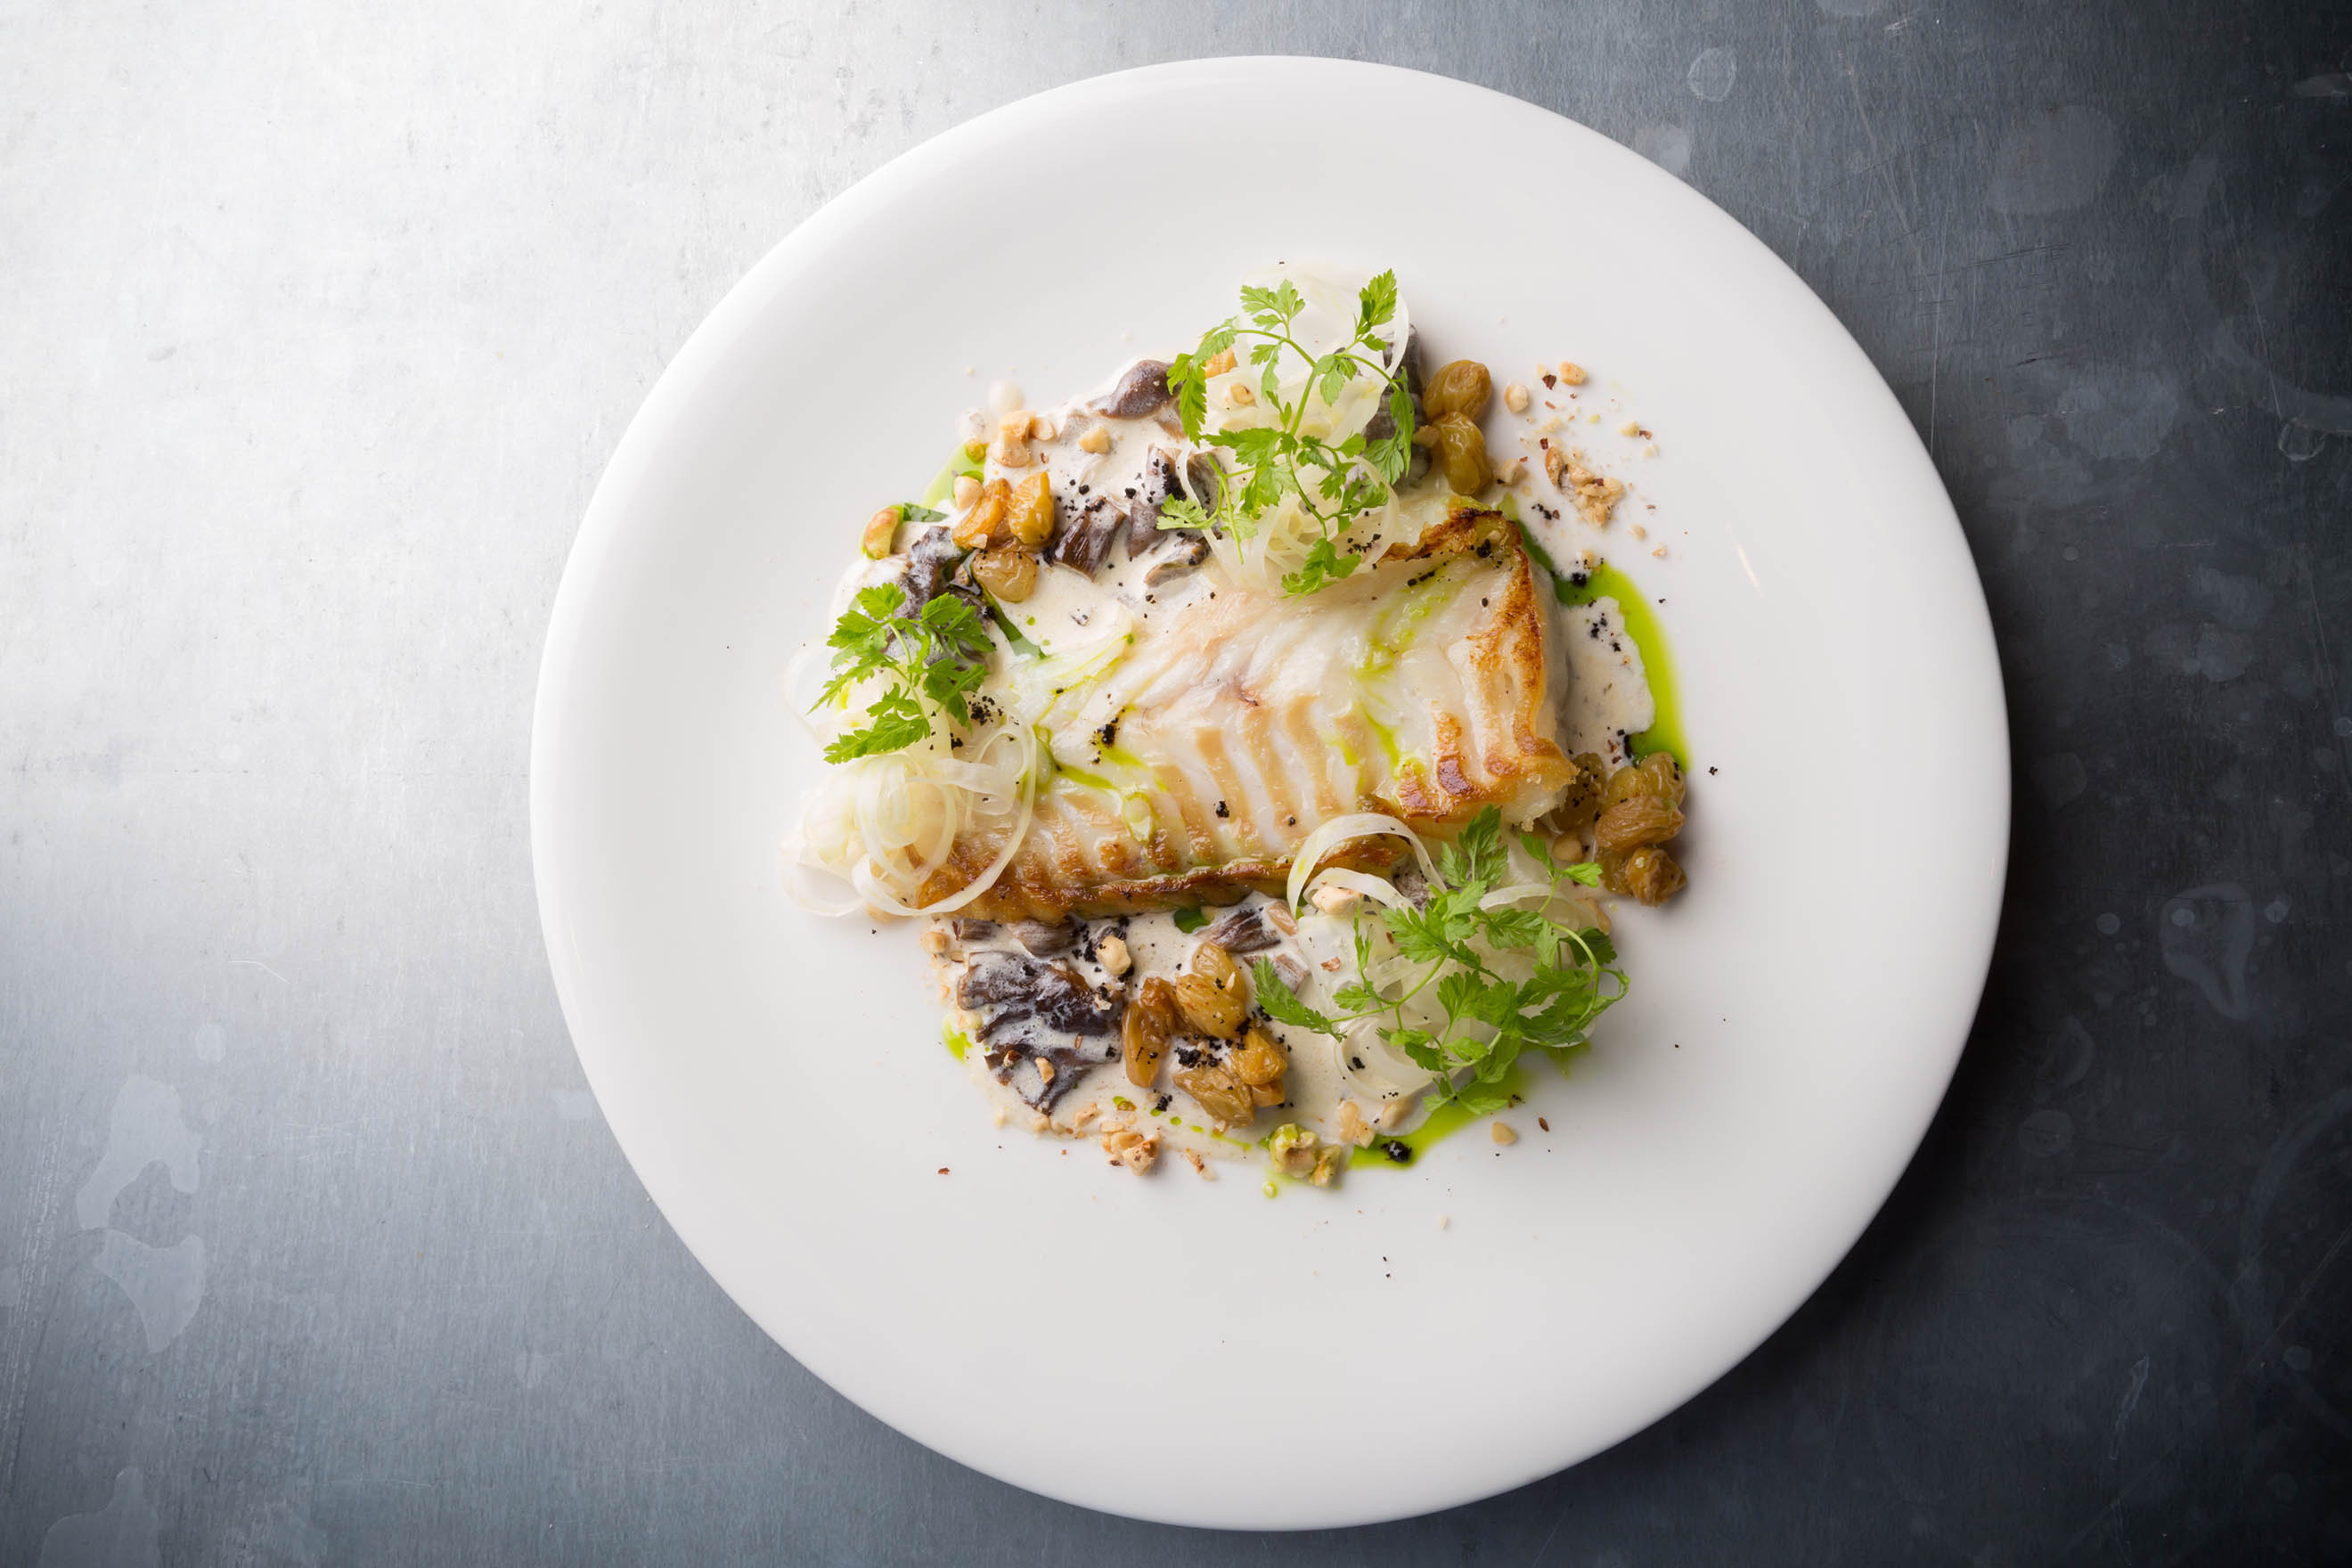 Fish with white sauce